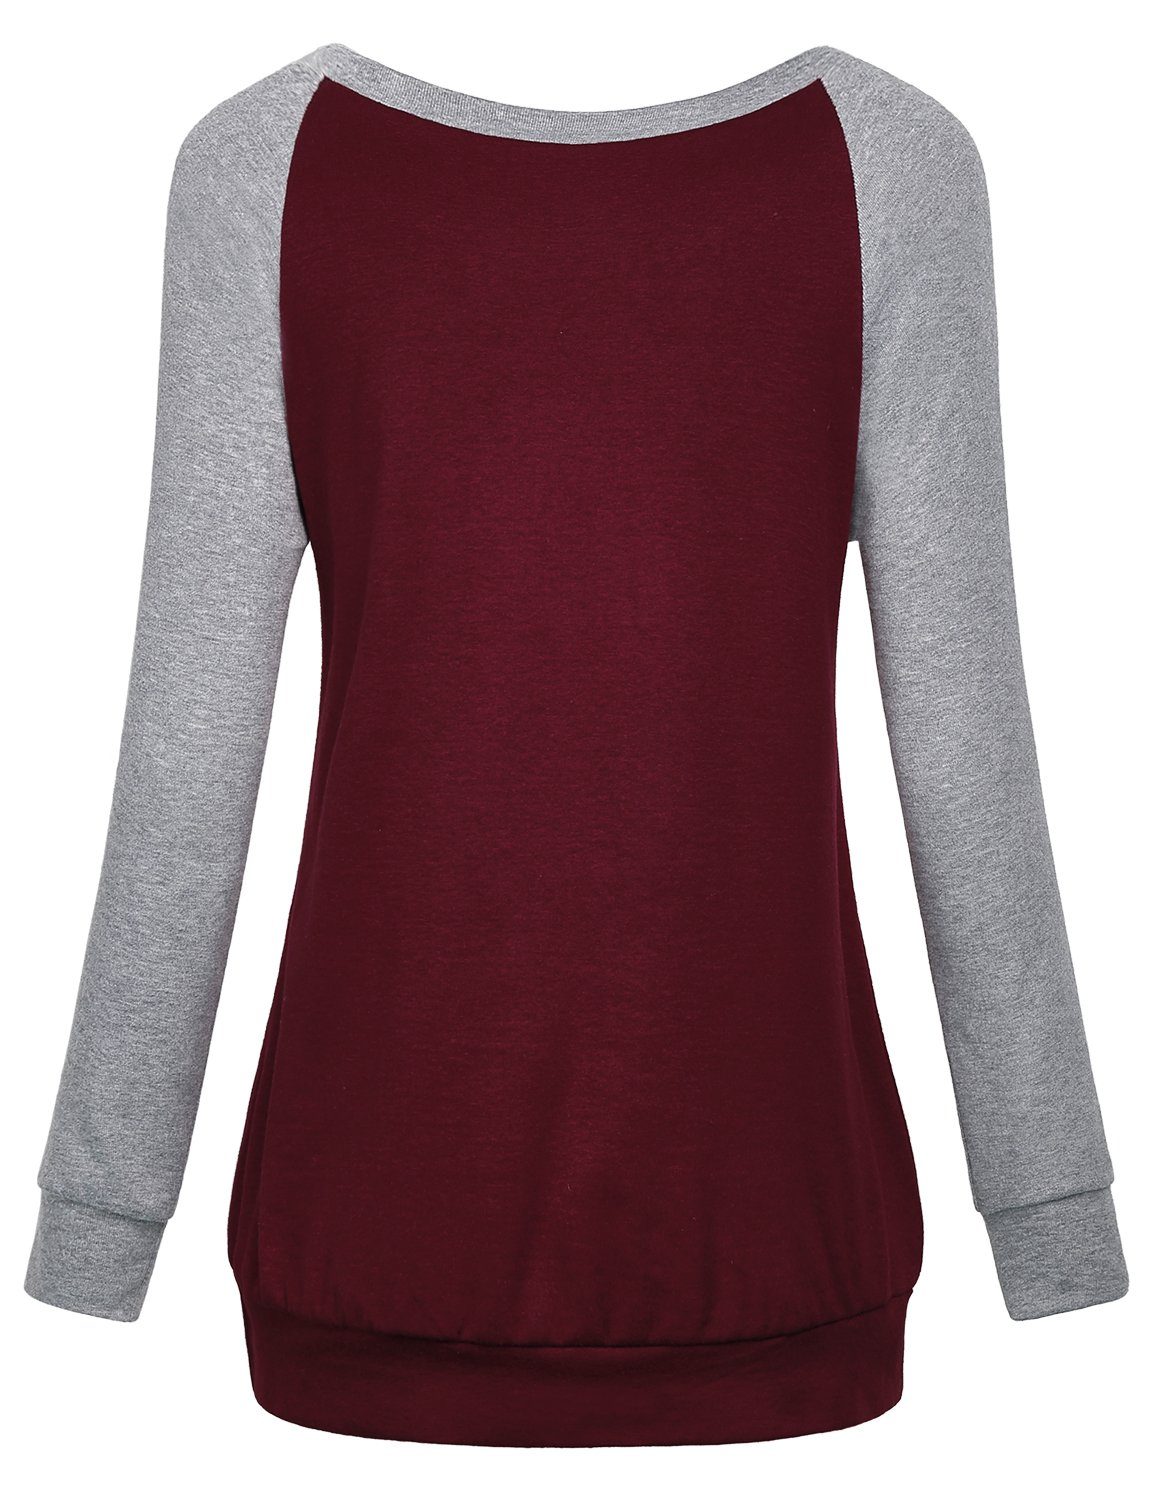 Cestyle Casual Sweaters for Women, Fall Long Sleeve Round Neck Splice Shirts Sports Loose Fit Cotton Knitted Cute Tunic Sweatshirts Loft Clothing Wine X-Large by Cestyle (Image #2)